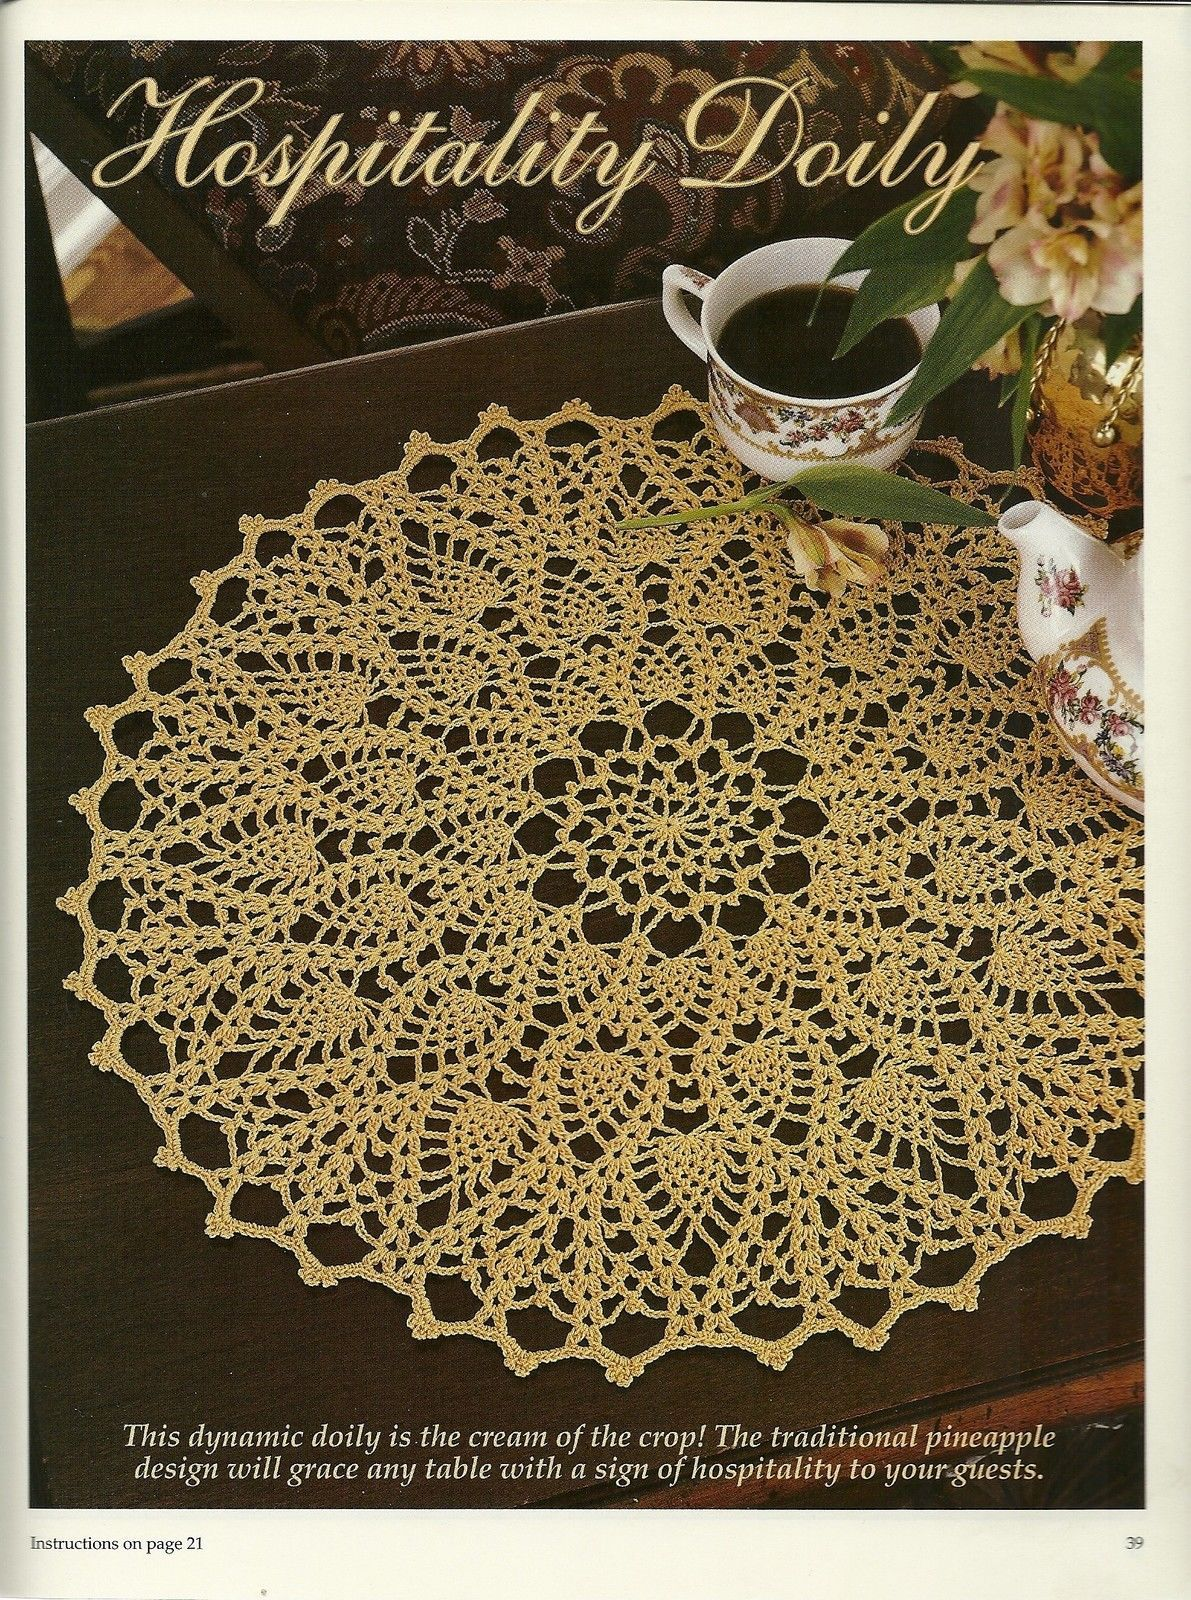 Crochet With Heart Leisure Arts Magazine June 2001 Volume 6 No. 2